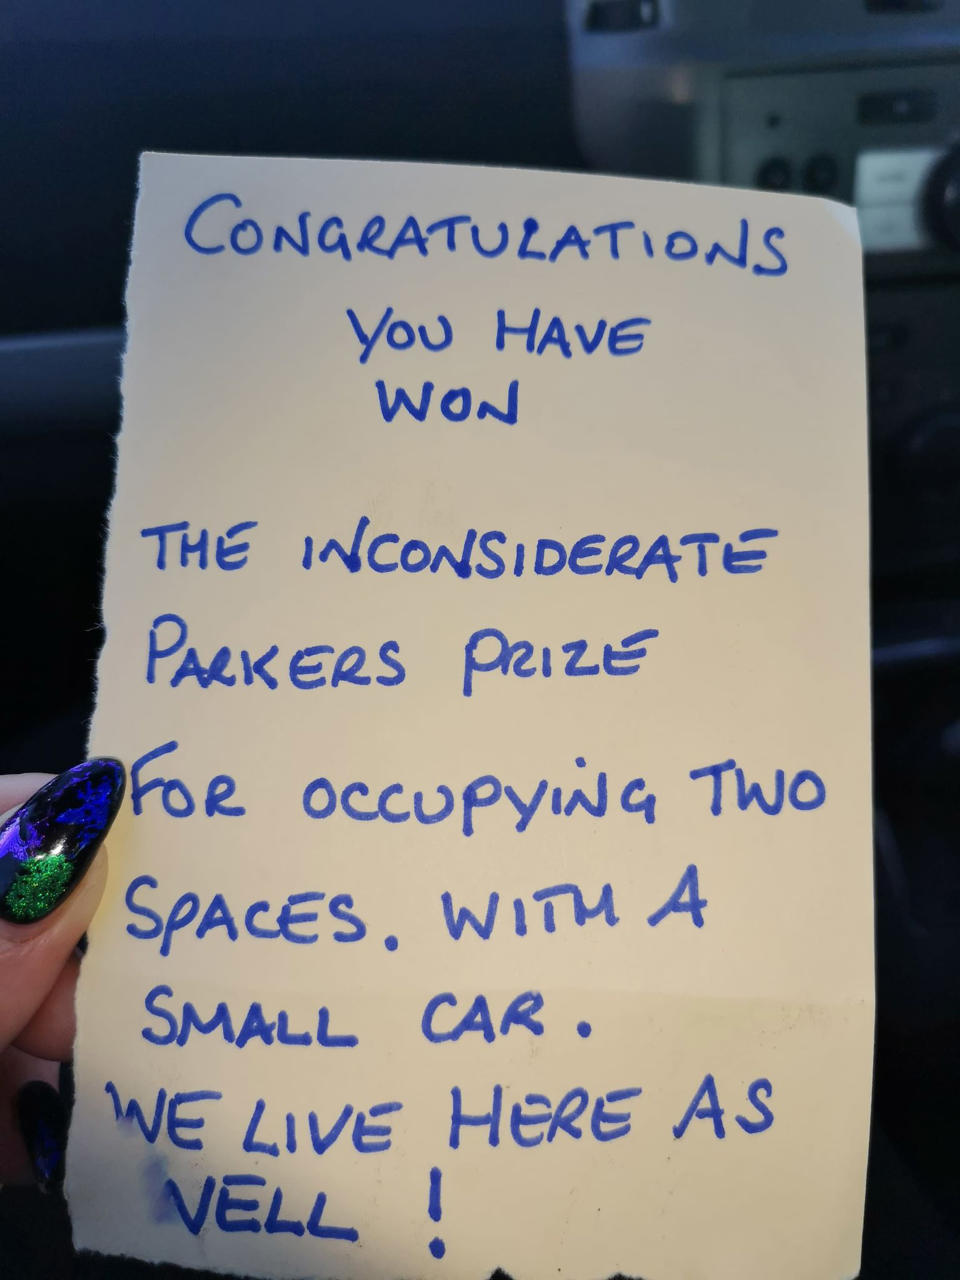 Chelsey Chara has vowed to continue parking in the same spot despite the backlash [Photo: Caters]